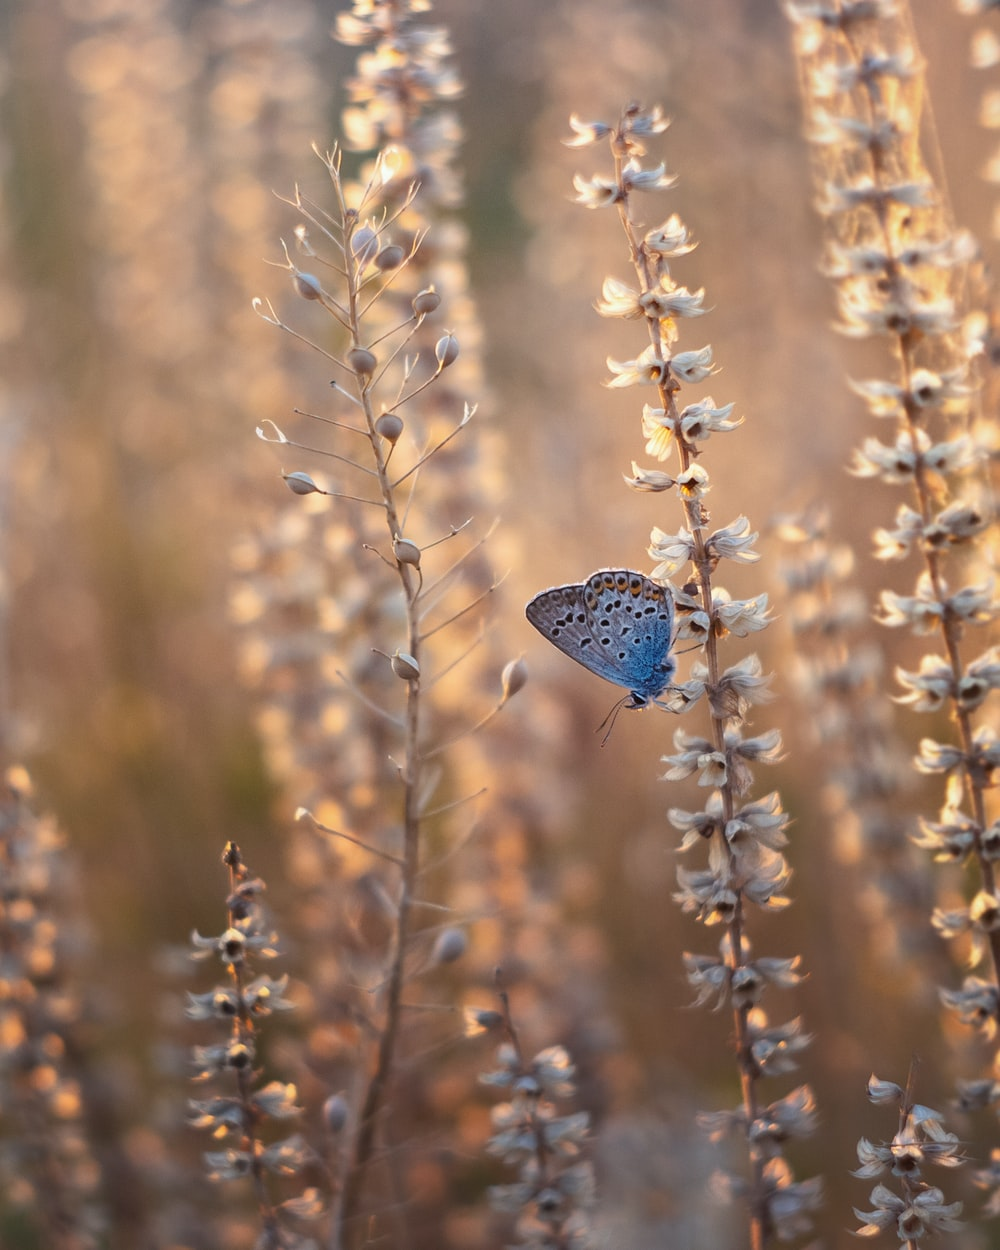 blue butterfly perched on brown plant during daytime